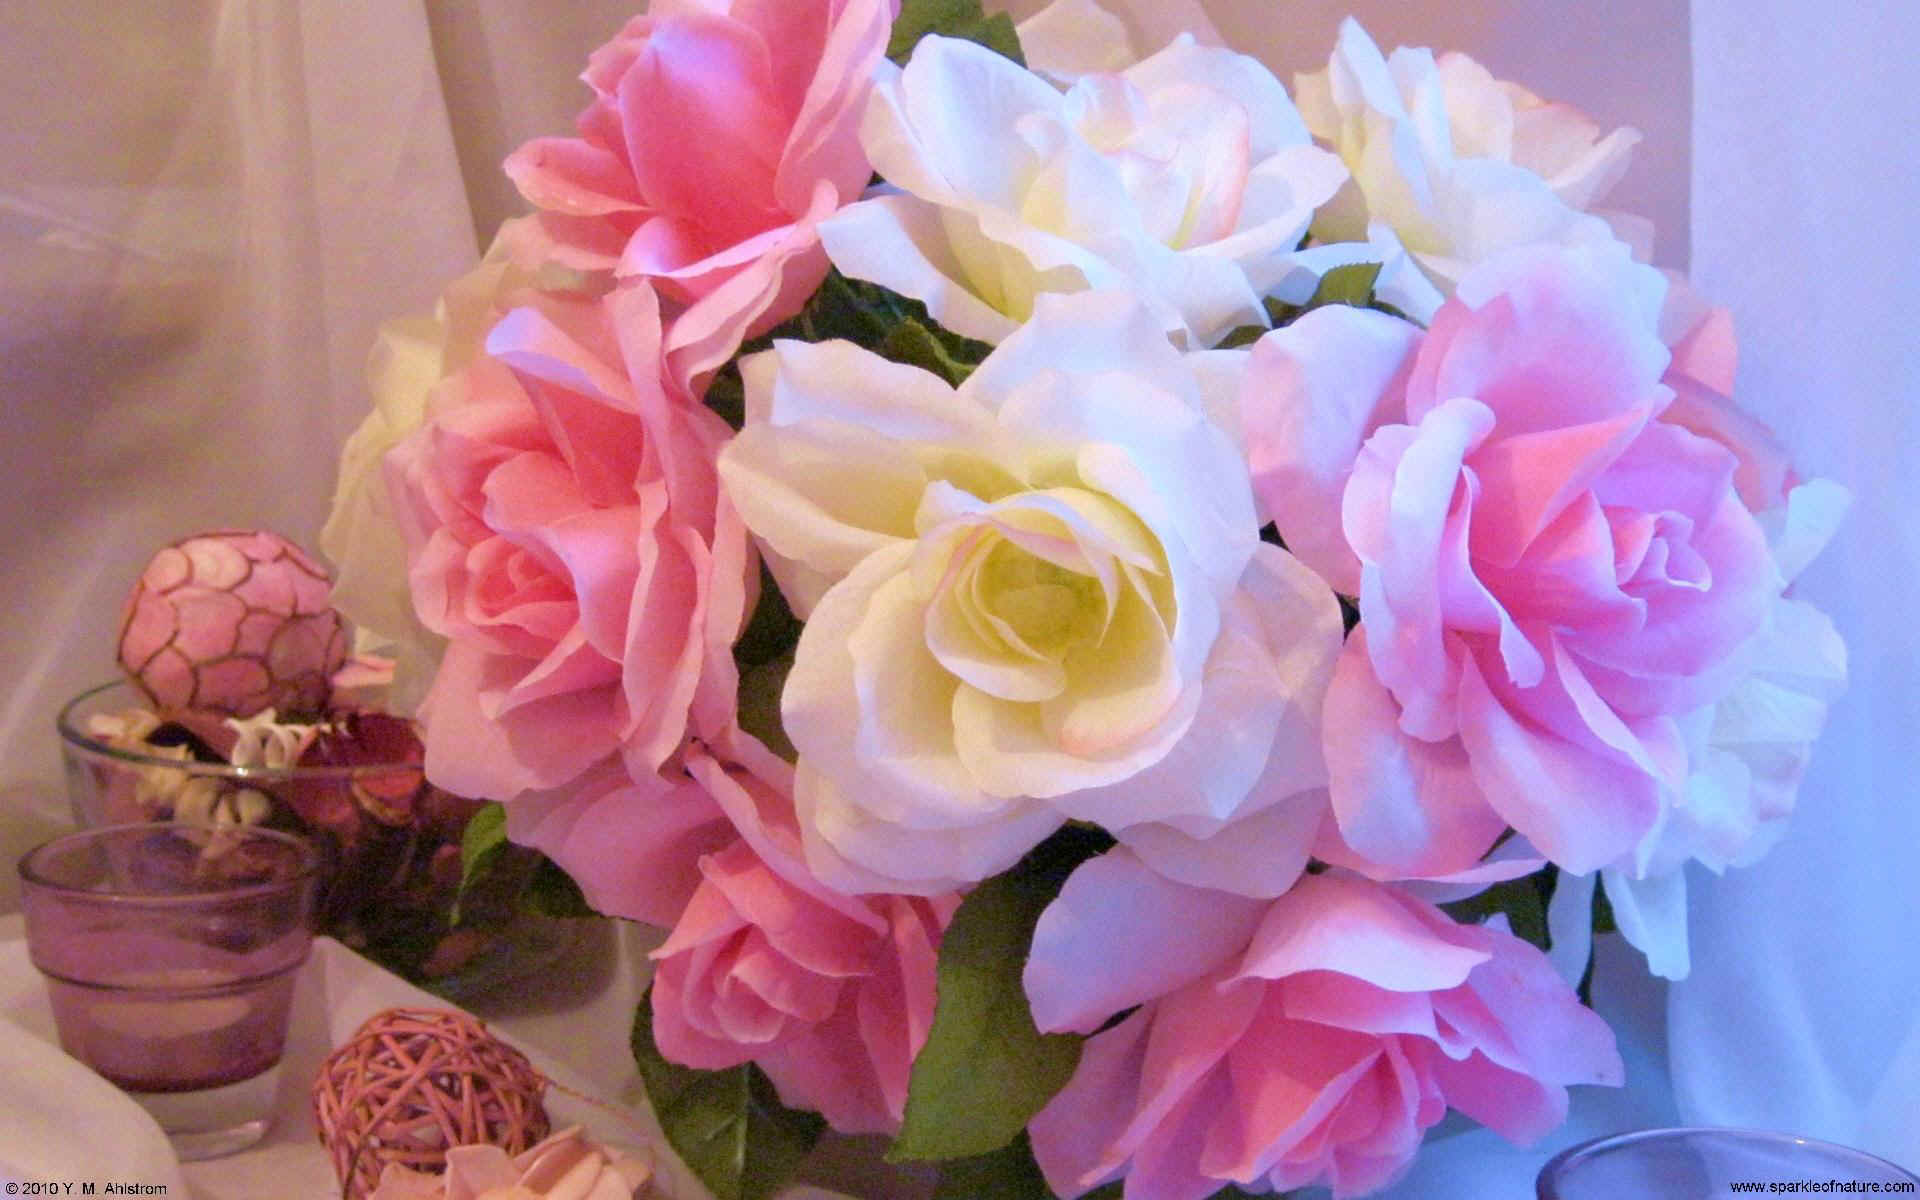 0357 pink and white roses W 1920x1200.jpg (264393 bytes)